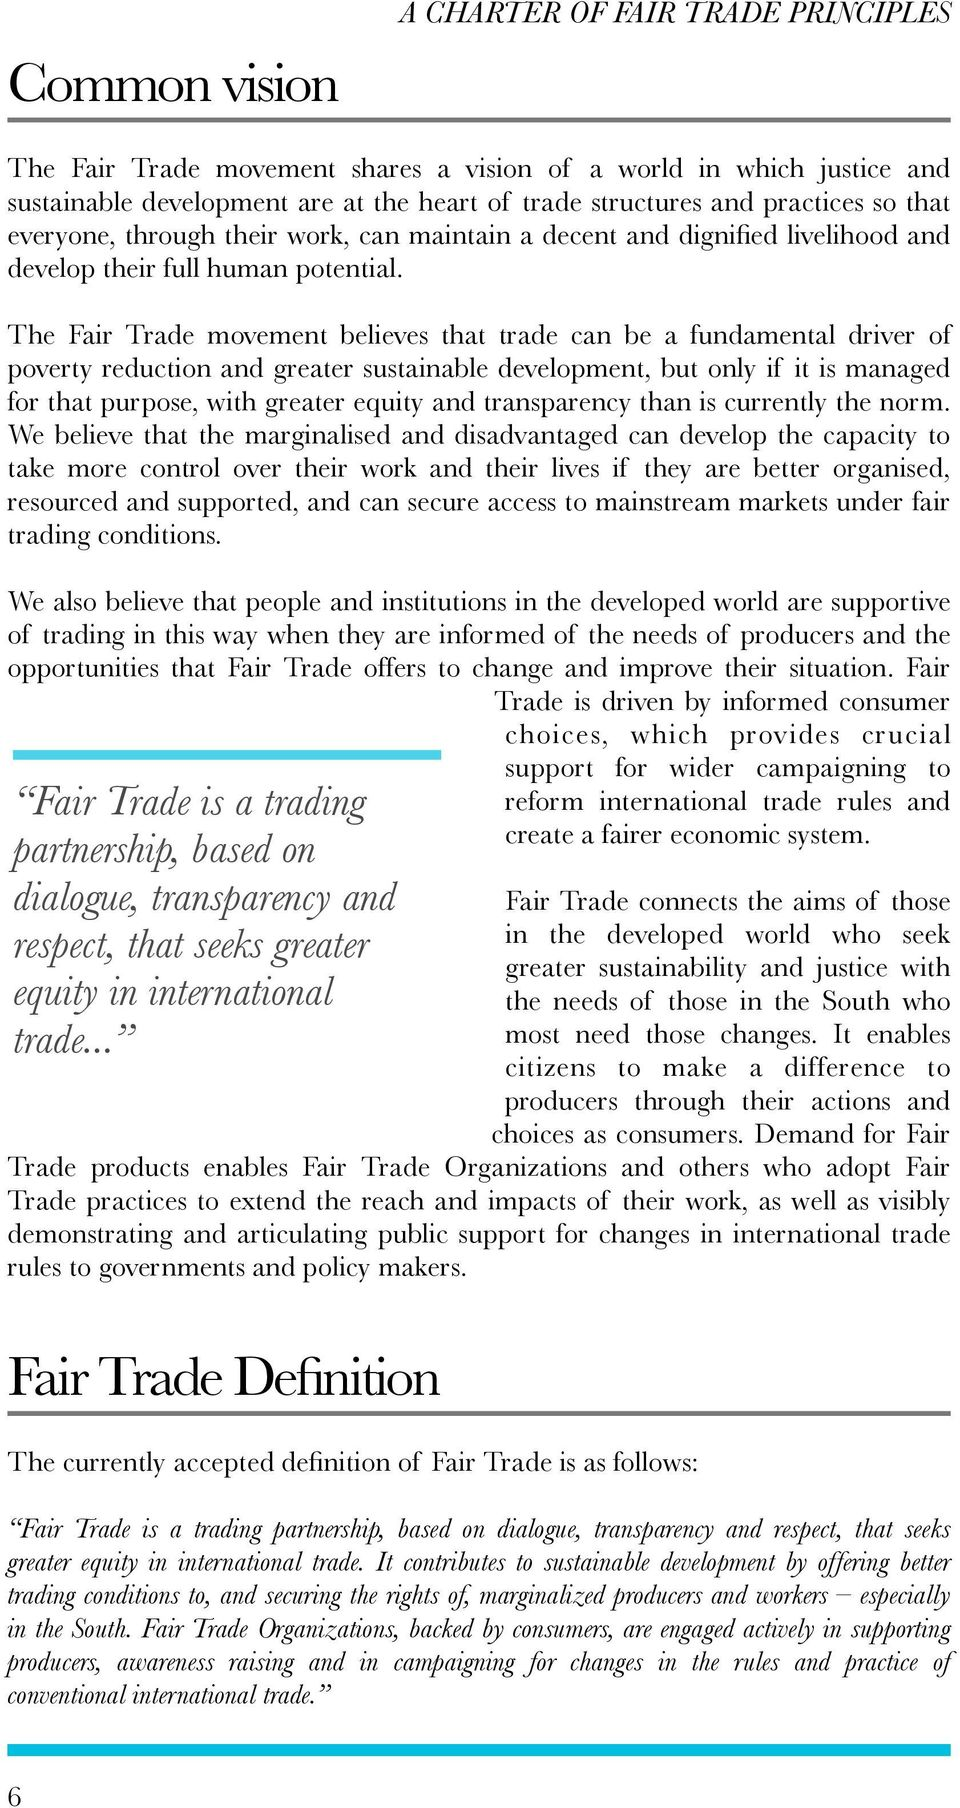 The Fair Trade movement believes that trade can be a fundamental driver of poverty reduction and greater sustainable development, but only if it is managed for that purpose, with greater equity and